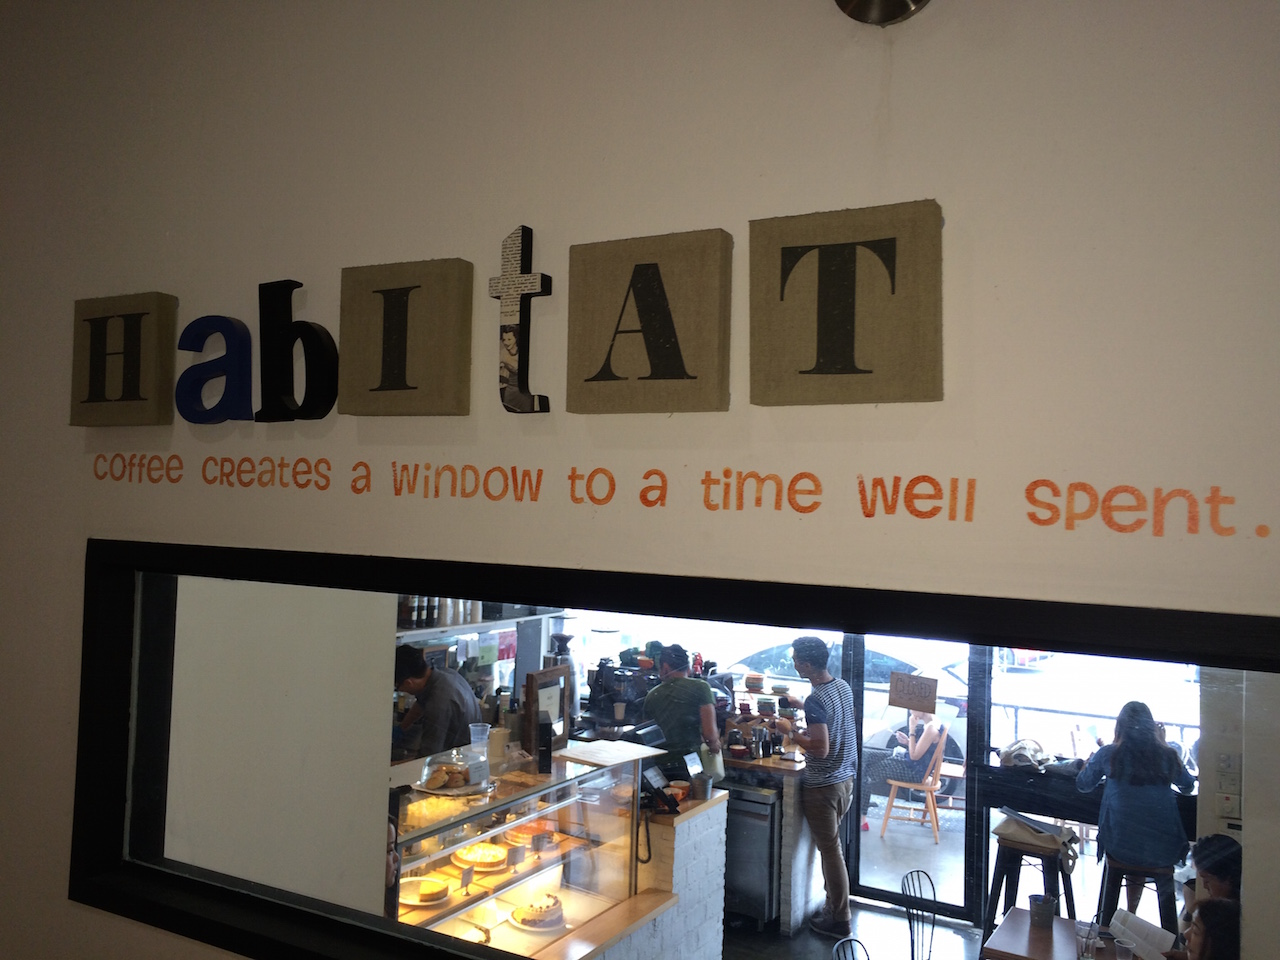 Habitat Coffee at 223 Upper Thomson Road